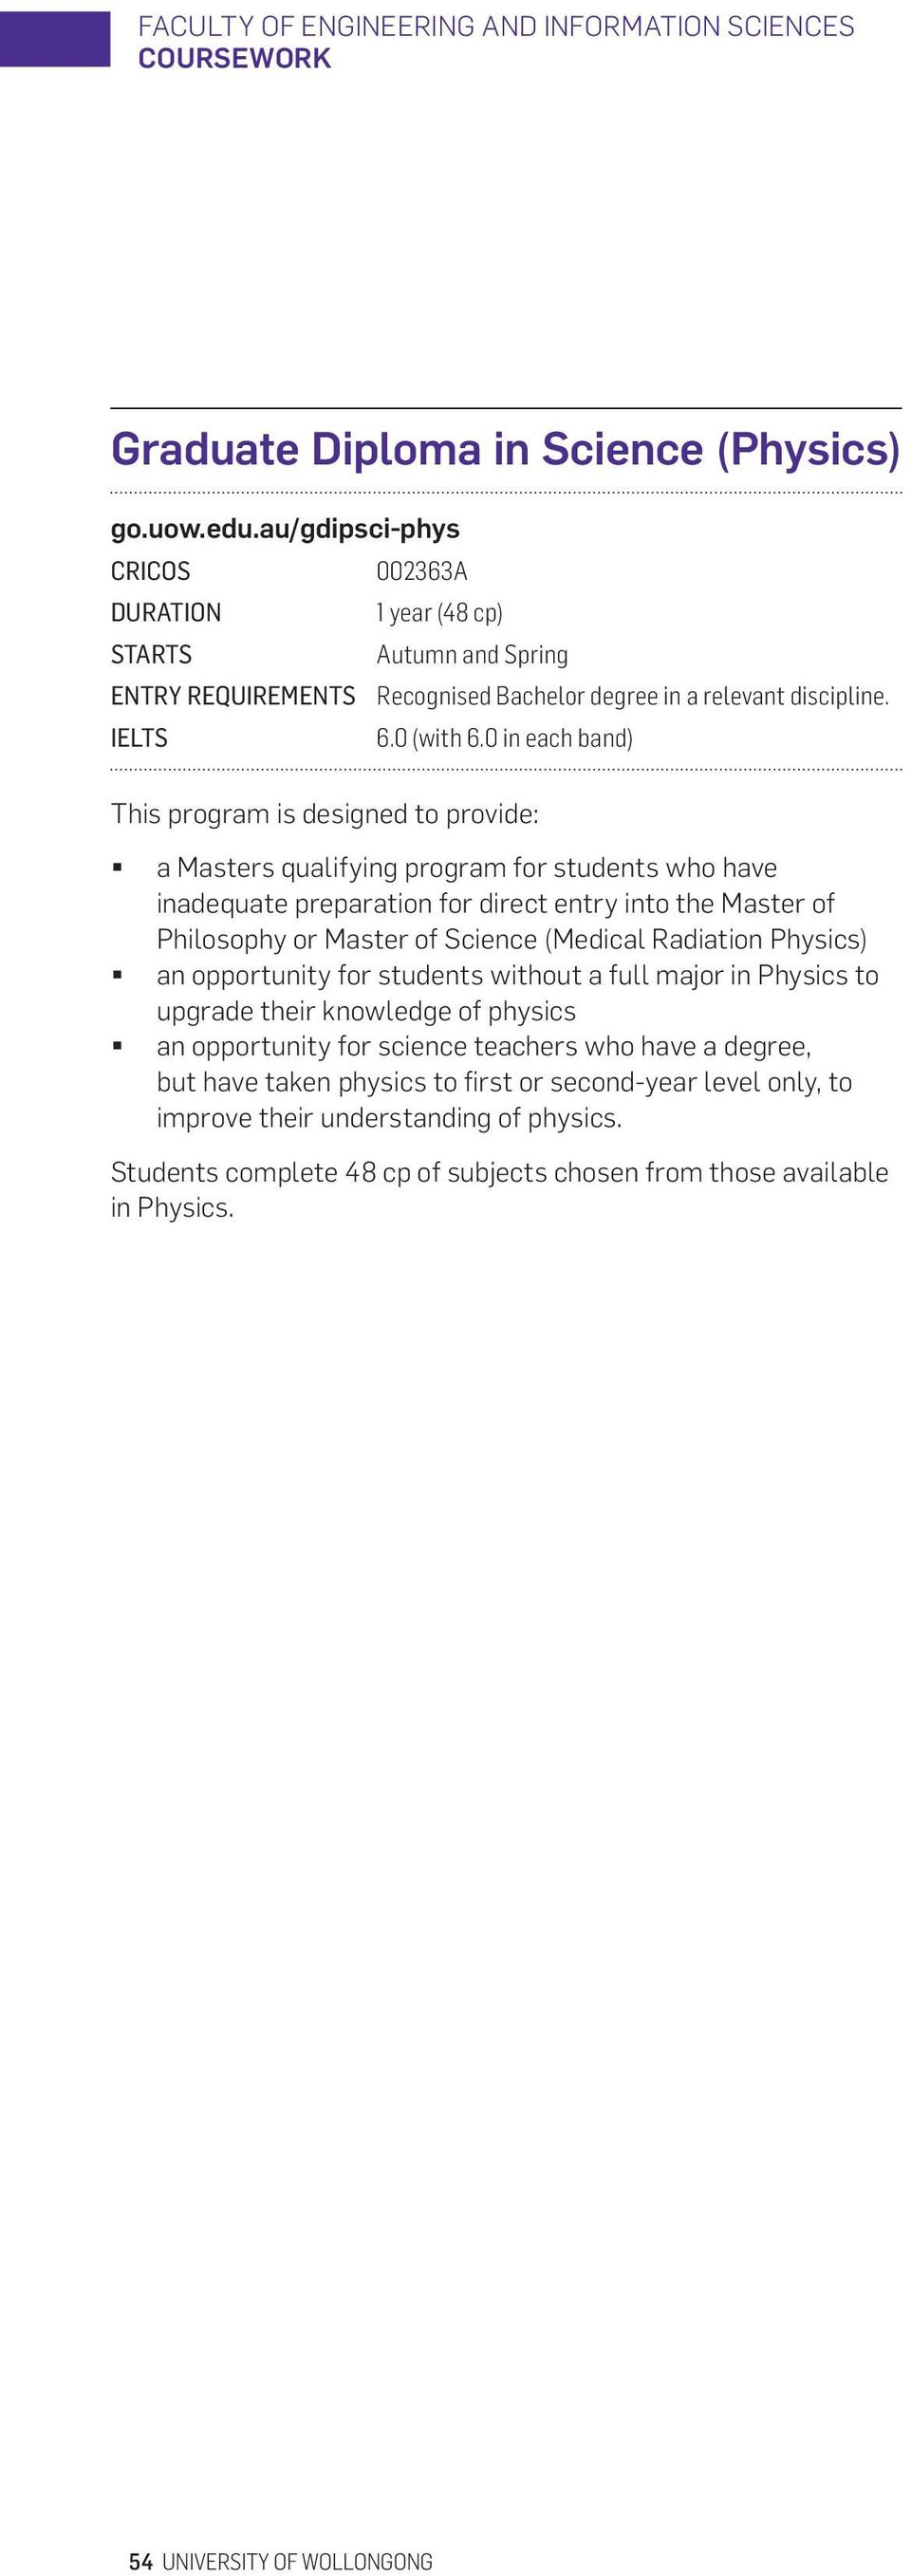 (Medical Radiation Physics) an opportunity for students without a full major in Physics to upgrade their knowledge of physics an opportunity for science teachers who have a degree,